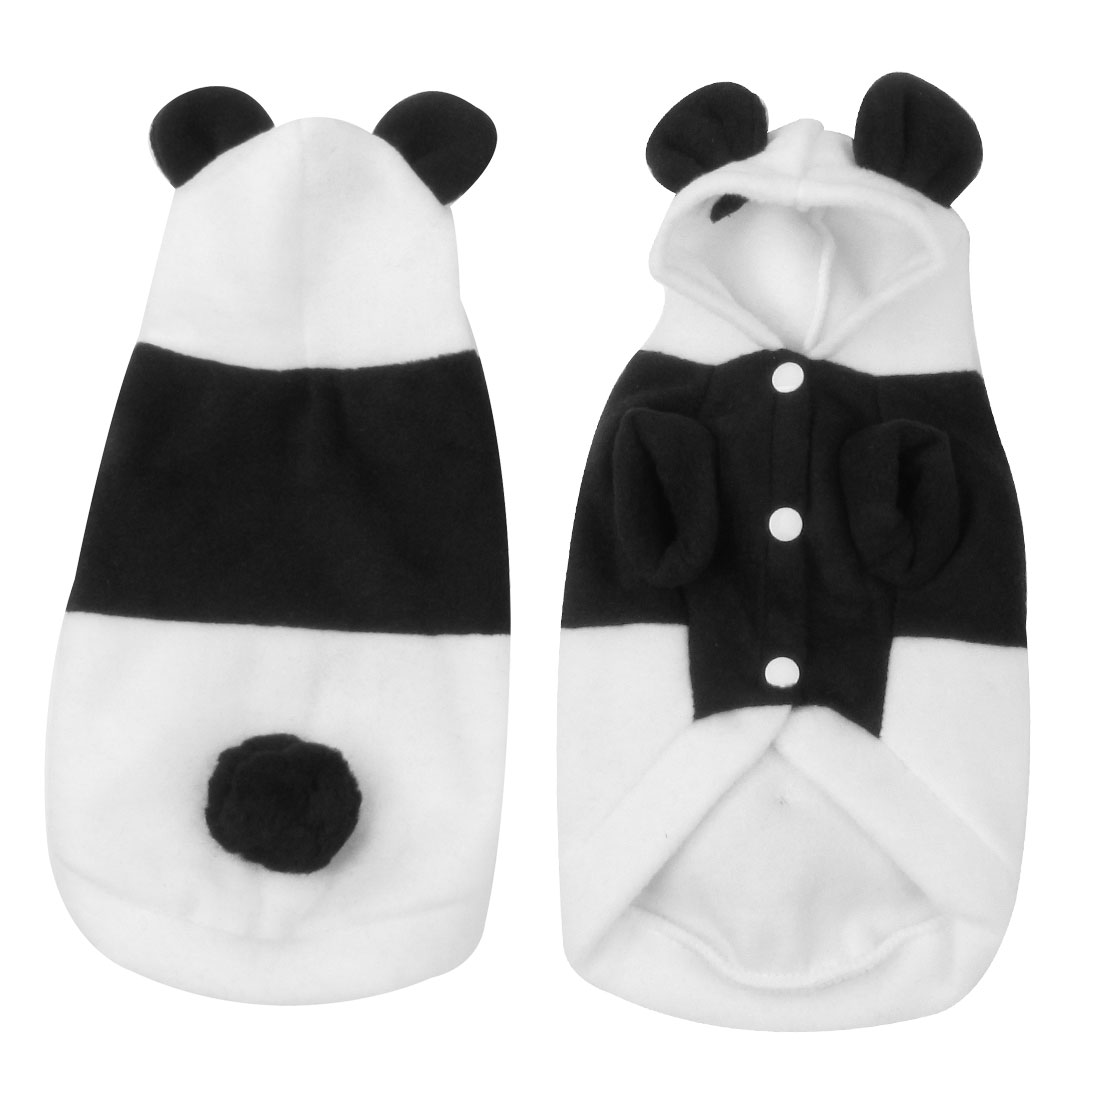 Winter Single Breasted Panda Design Hoodie Pet Dog Coat White Black Size S